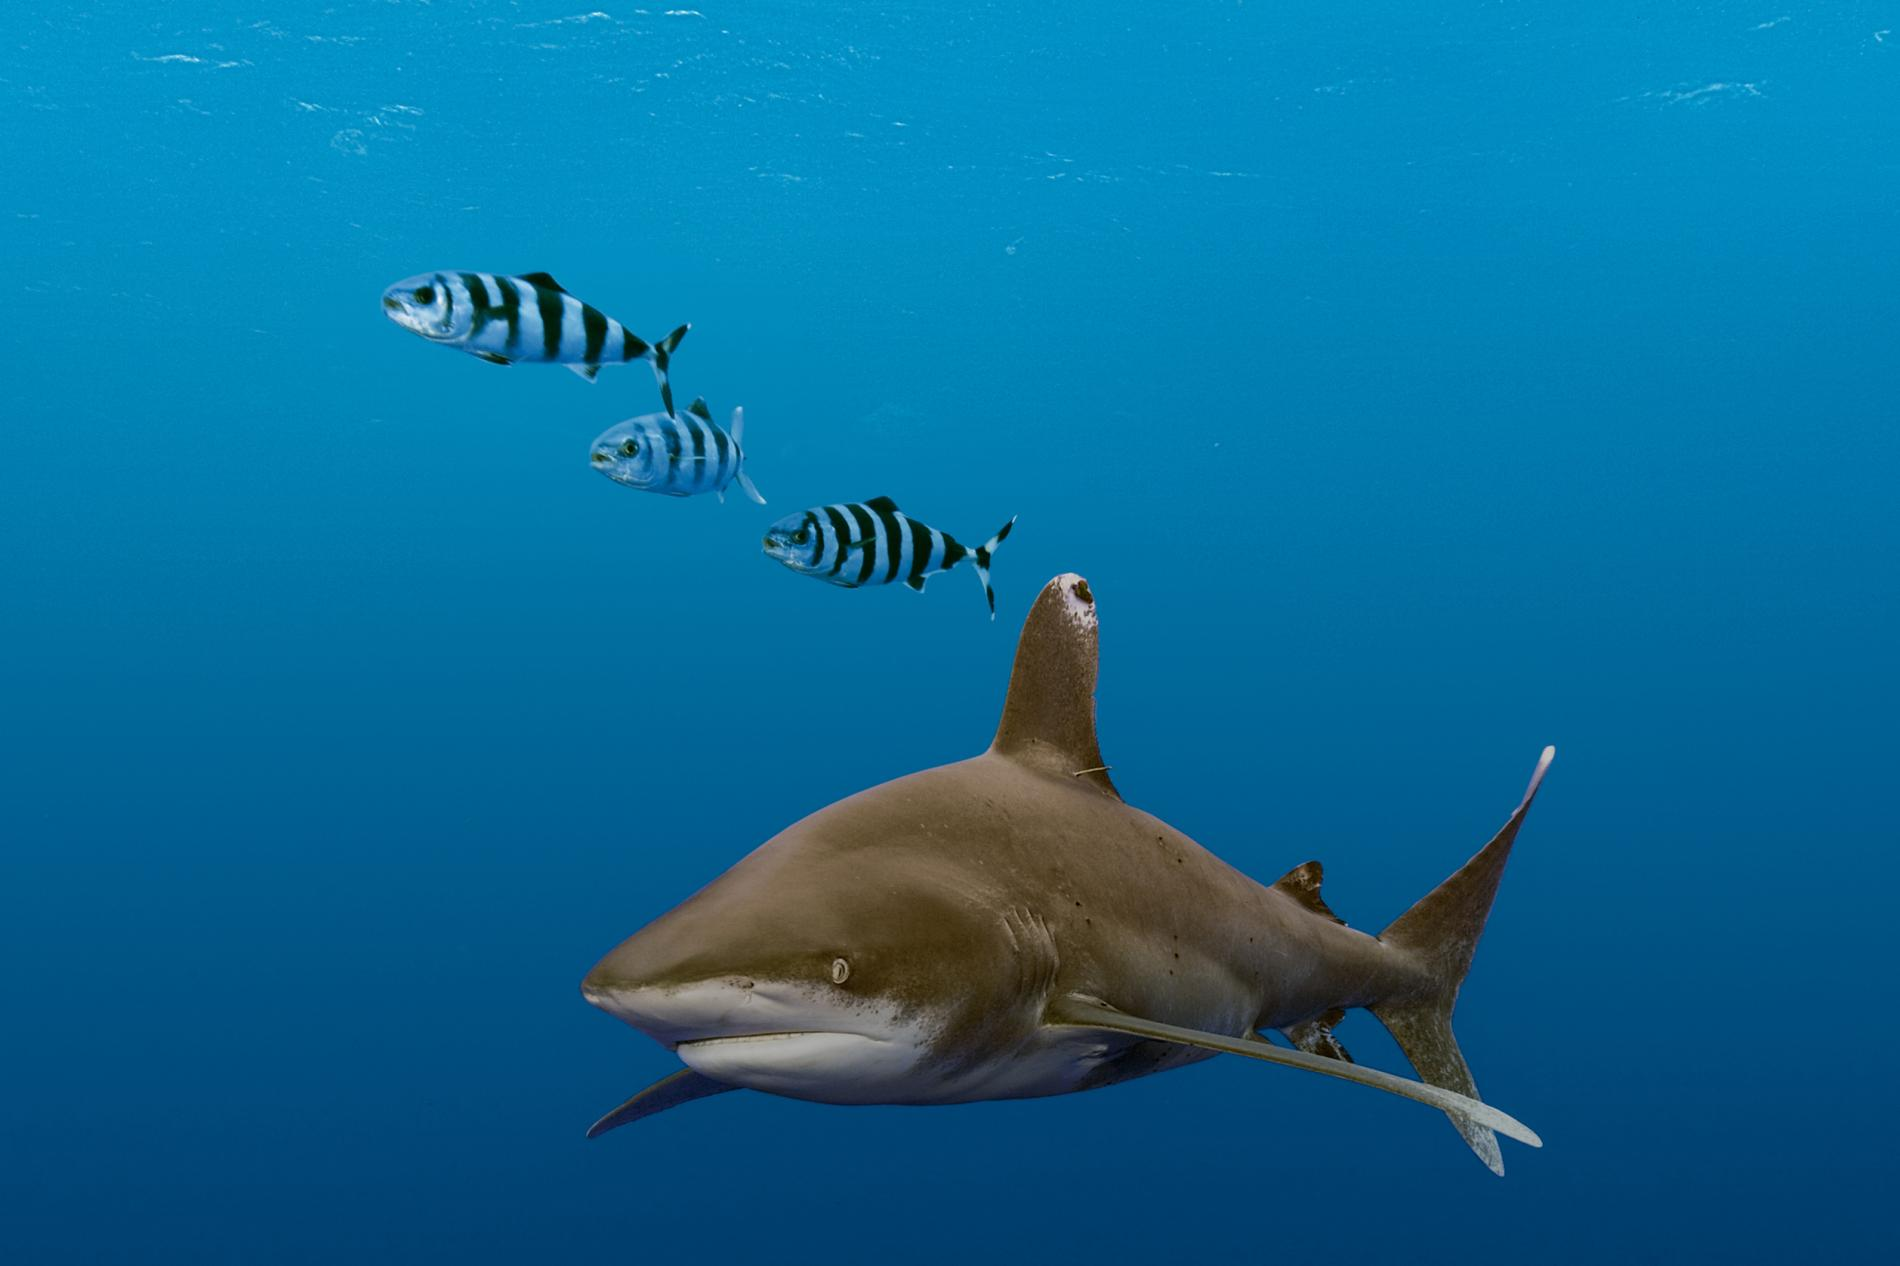 Oceanic Whitetip Sharks Once Ruled the Seas. Now Their Population Is ...